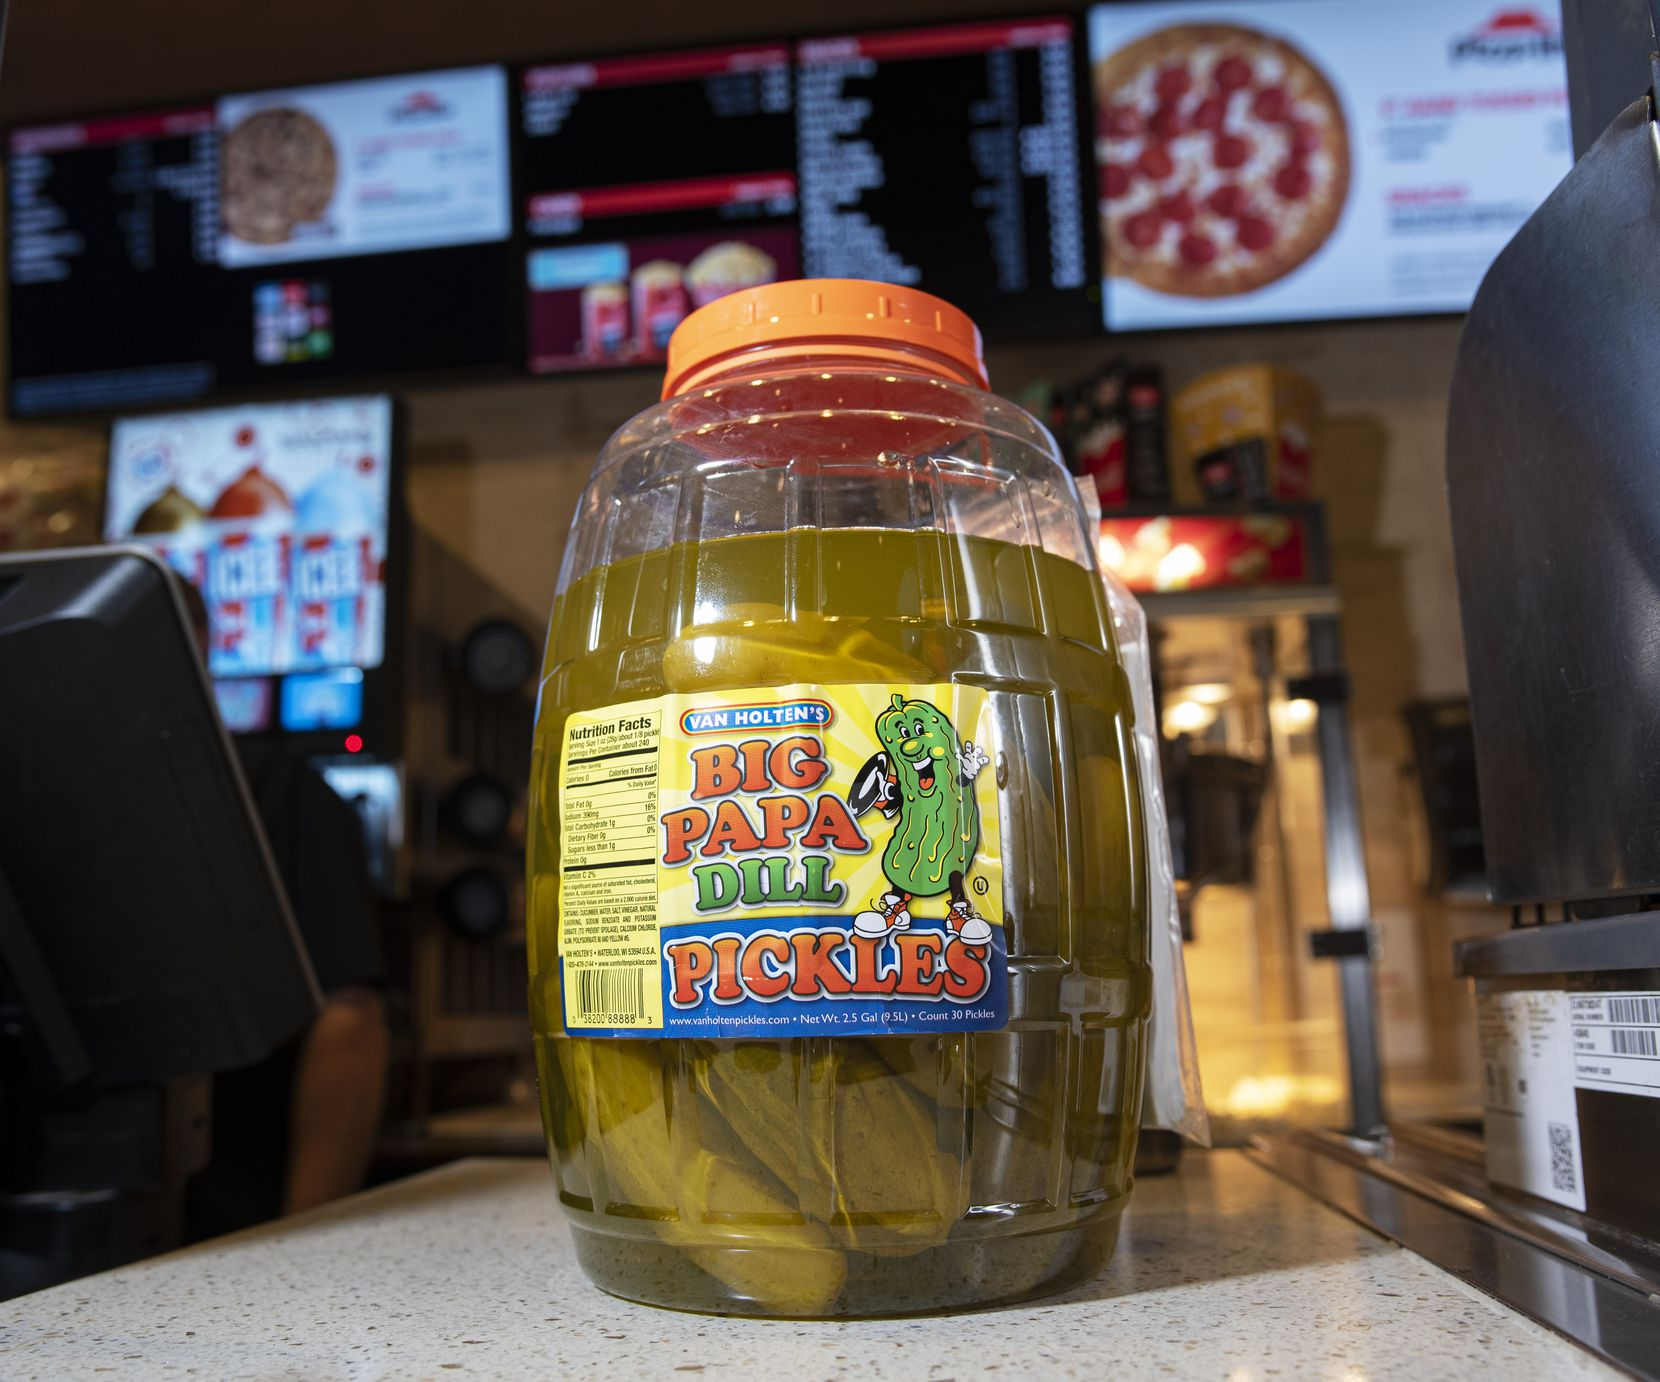 Big Papa Dill Pickles on sale at the Cinemark 17 IMAX movie theater in Dallas, on Sunday, Nov. 22, 2020.